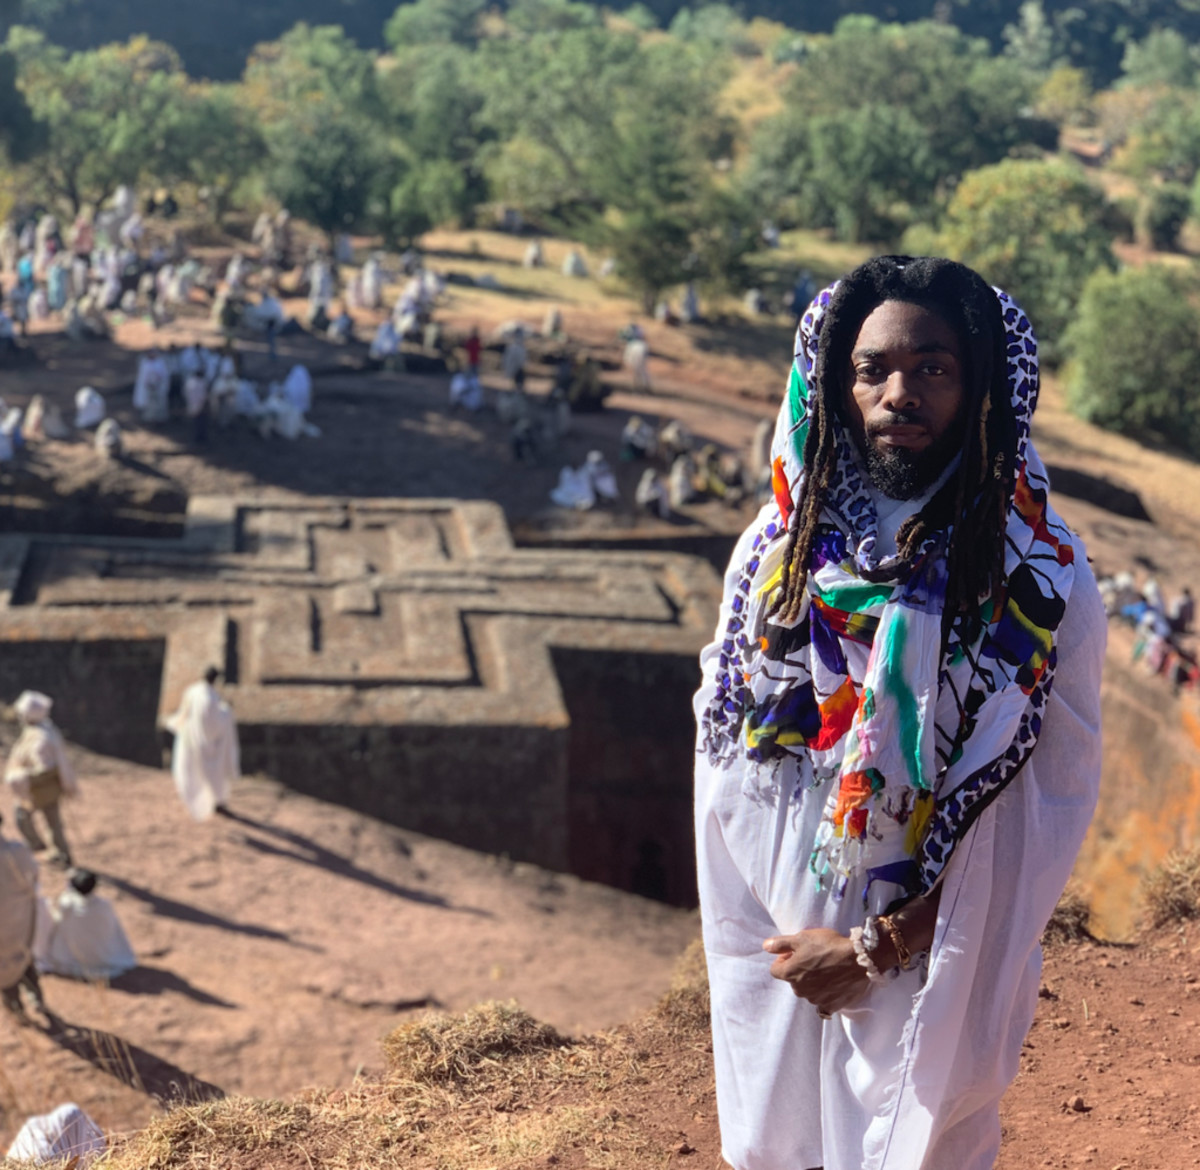 OLU visiting the historic churches at Lalibela while on vacation in Ethiopia just before Orthodox Christmas, January 2020